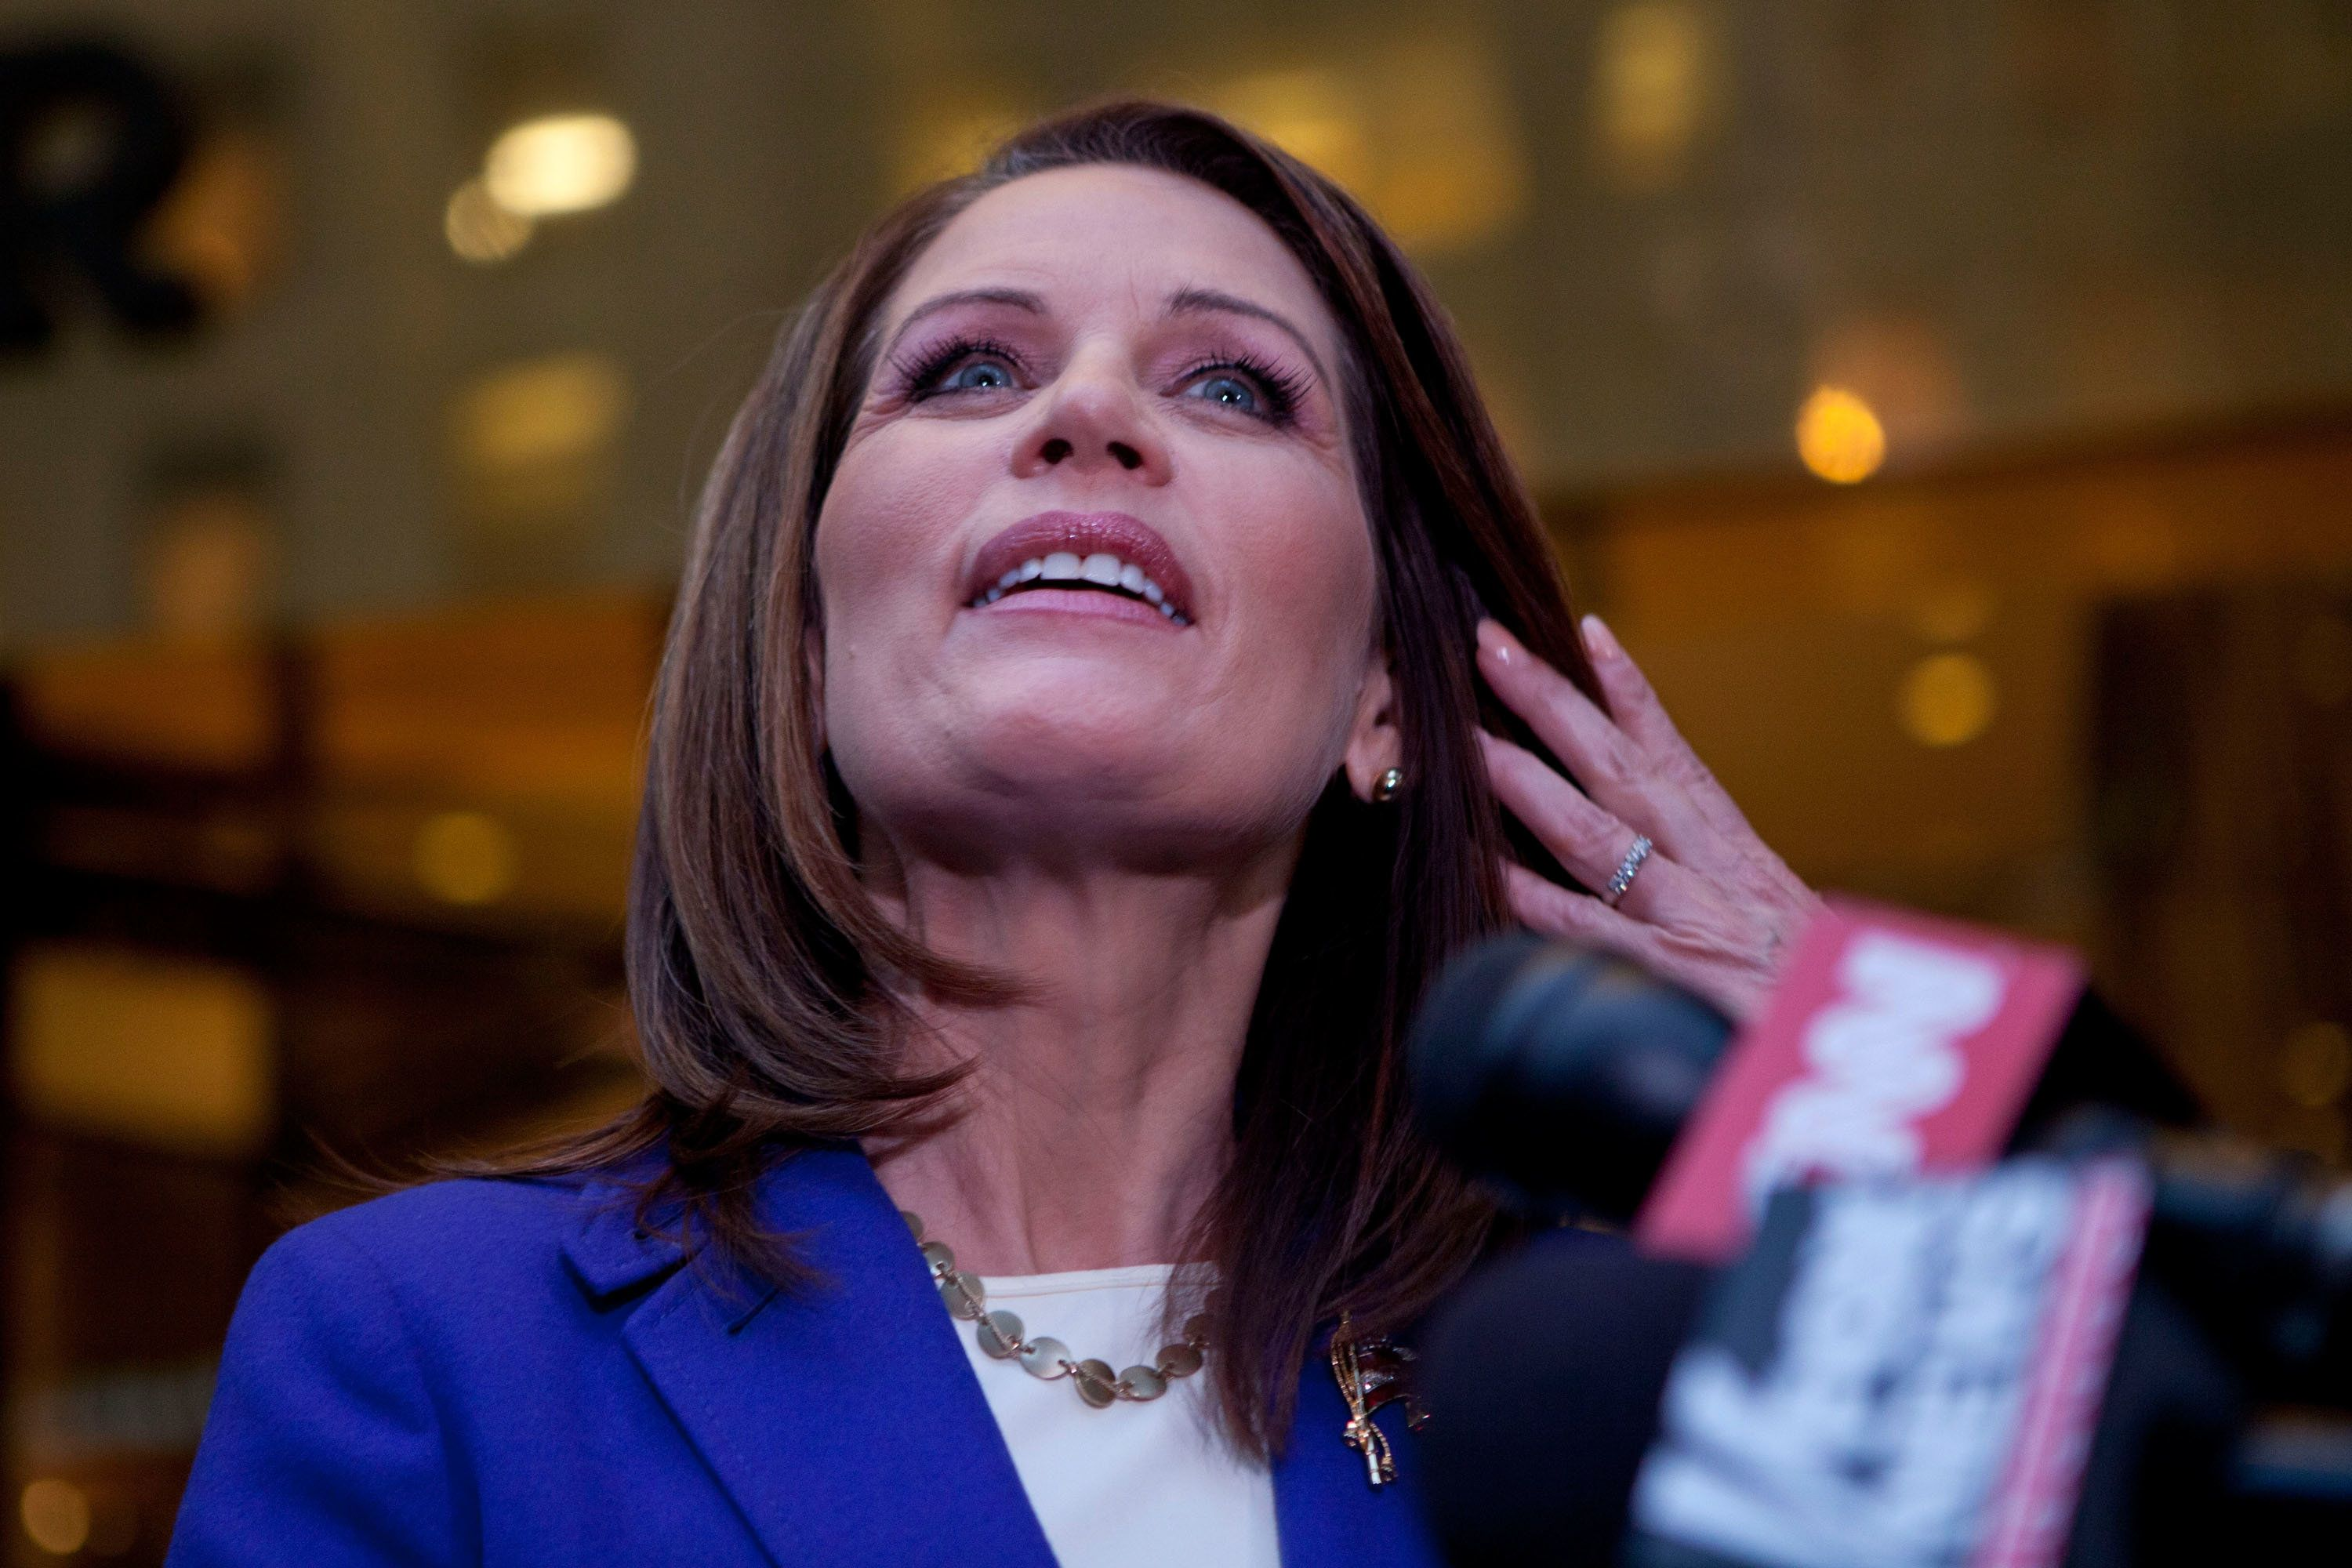 NEW YORK, NY - NOVEMBER 21:  Republican presidential candidate U.S. Rep Michele Bachmann (R-MN) wipes hair from her face while speaking to members of the media after meeting with Donald Trump at Trump Tower on 5th Avenue on November 21, 2011 in New York City. This is Bachman's fourth meeting with the developer and reality TV star since she started running for president.  (Photo by Andrew Burton/Getty Images)